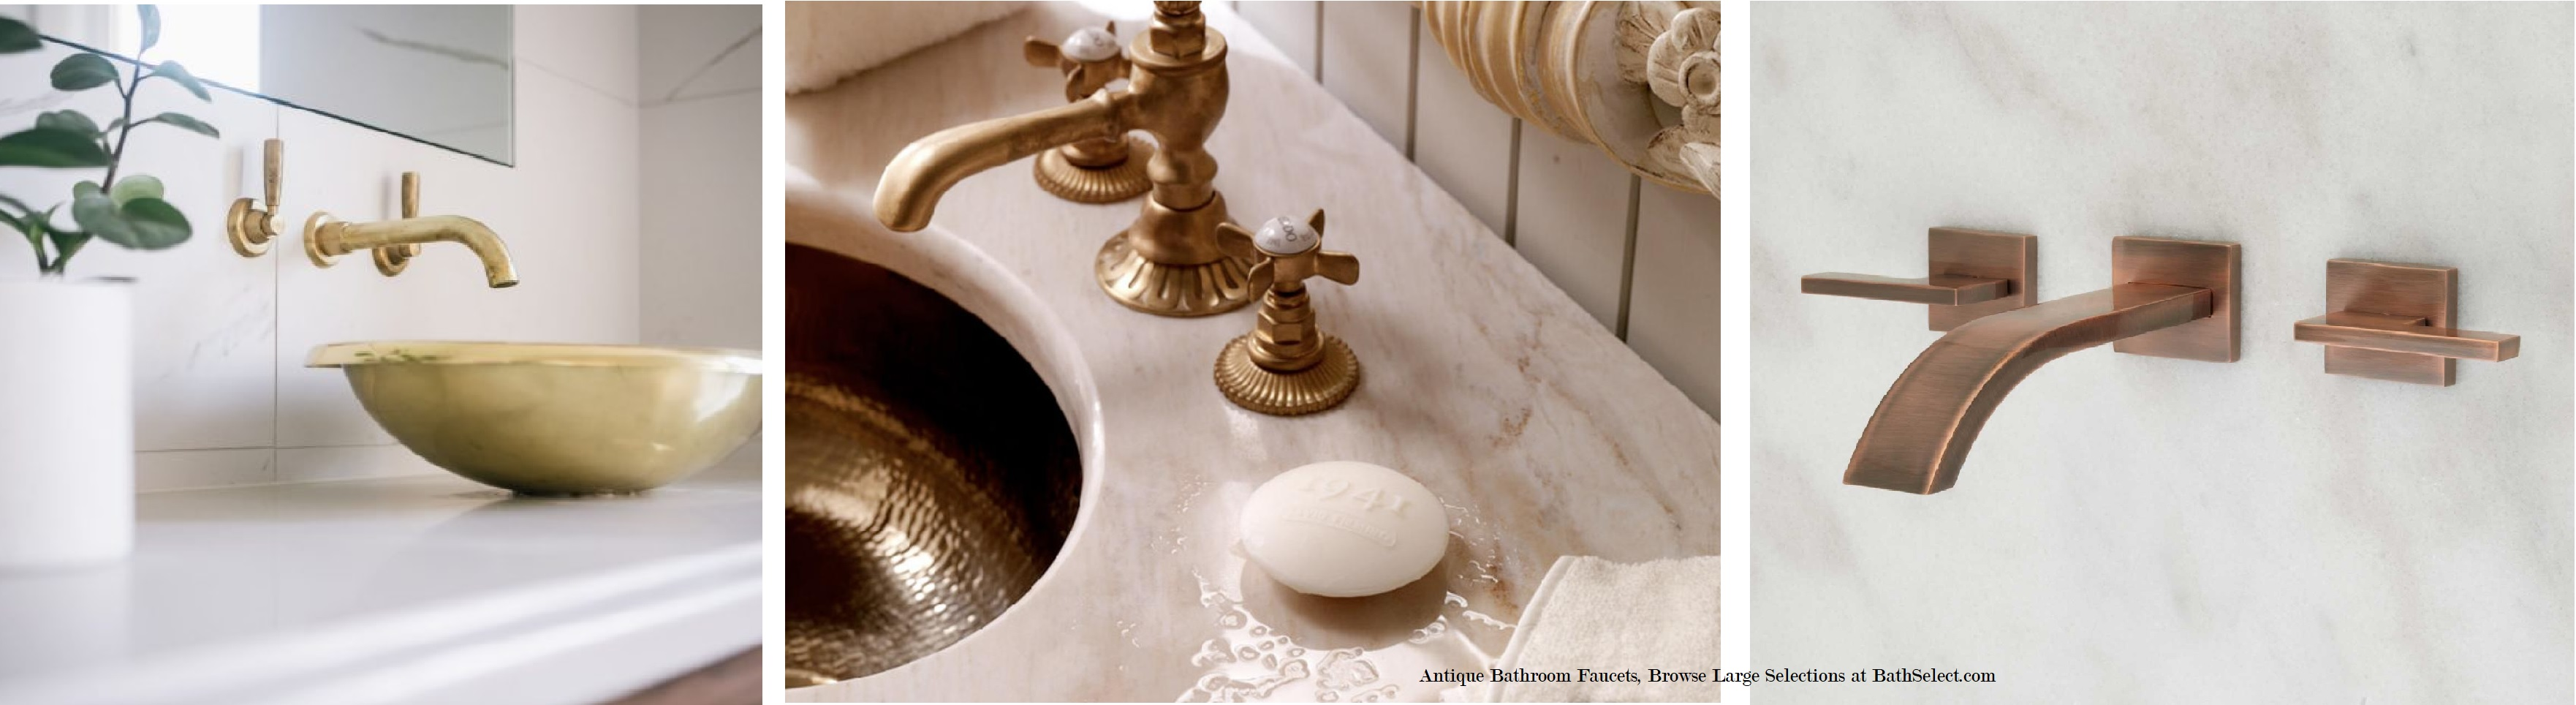 3 Day Sale Plus Free Shipping Home Depot Antique Brass Bathroom Faucets Bathselect